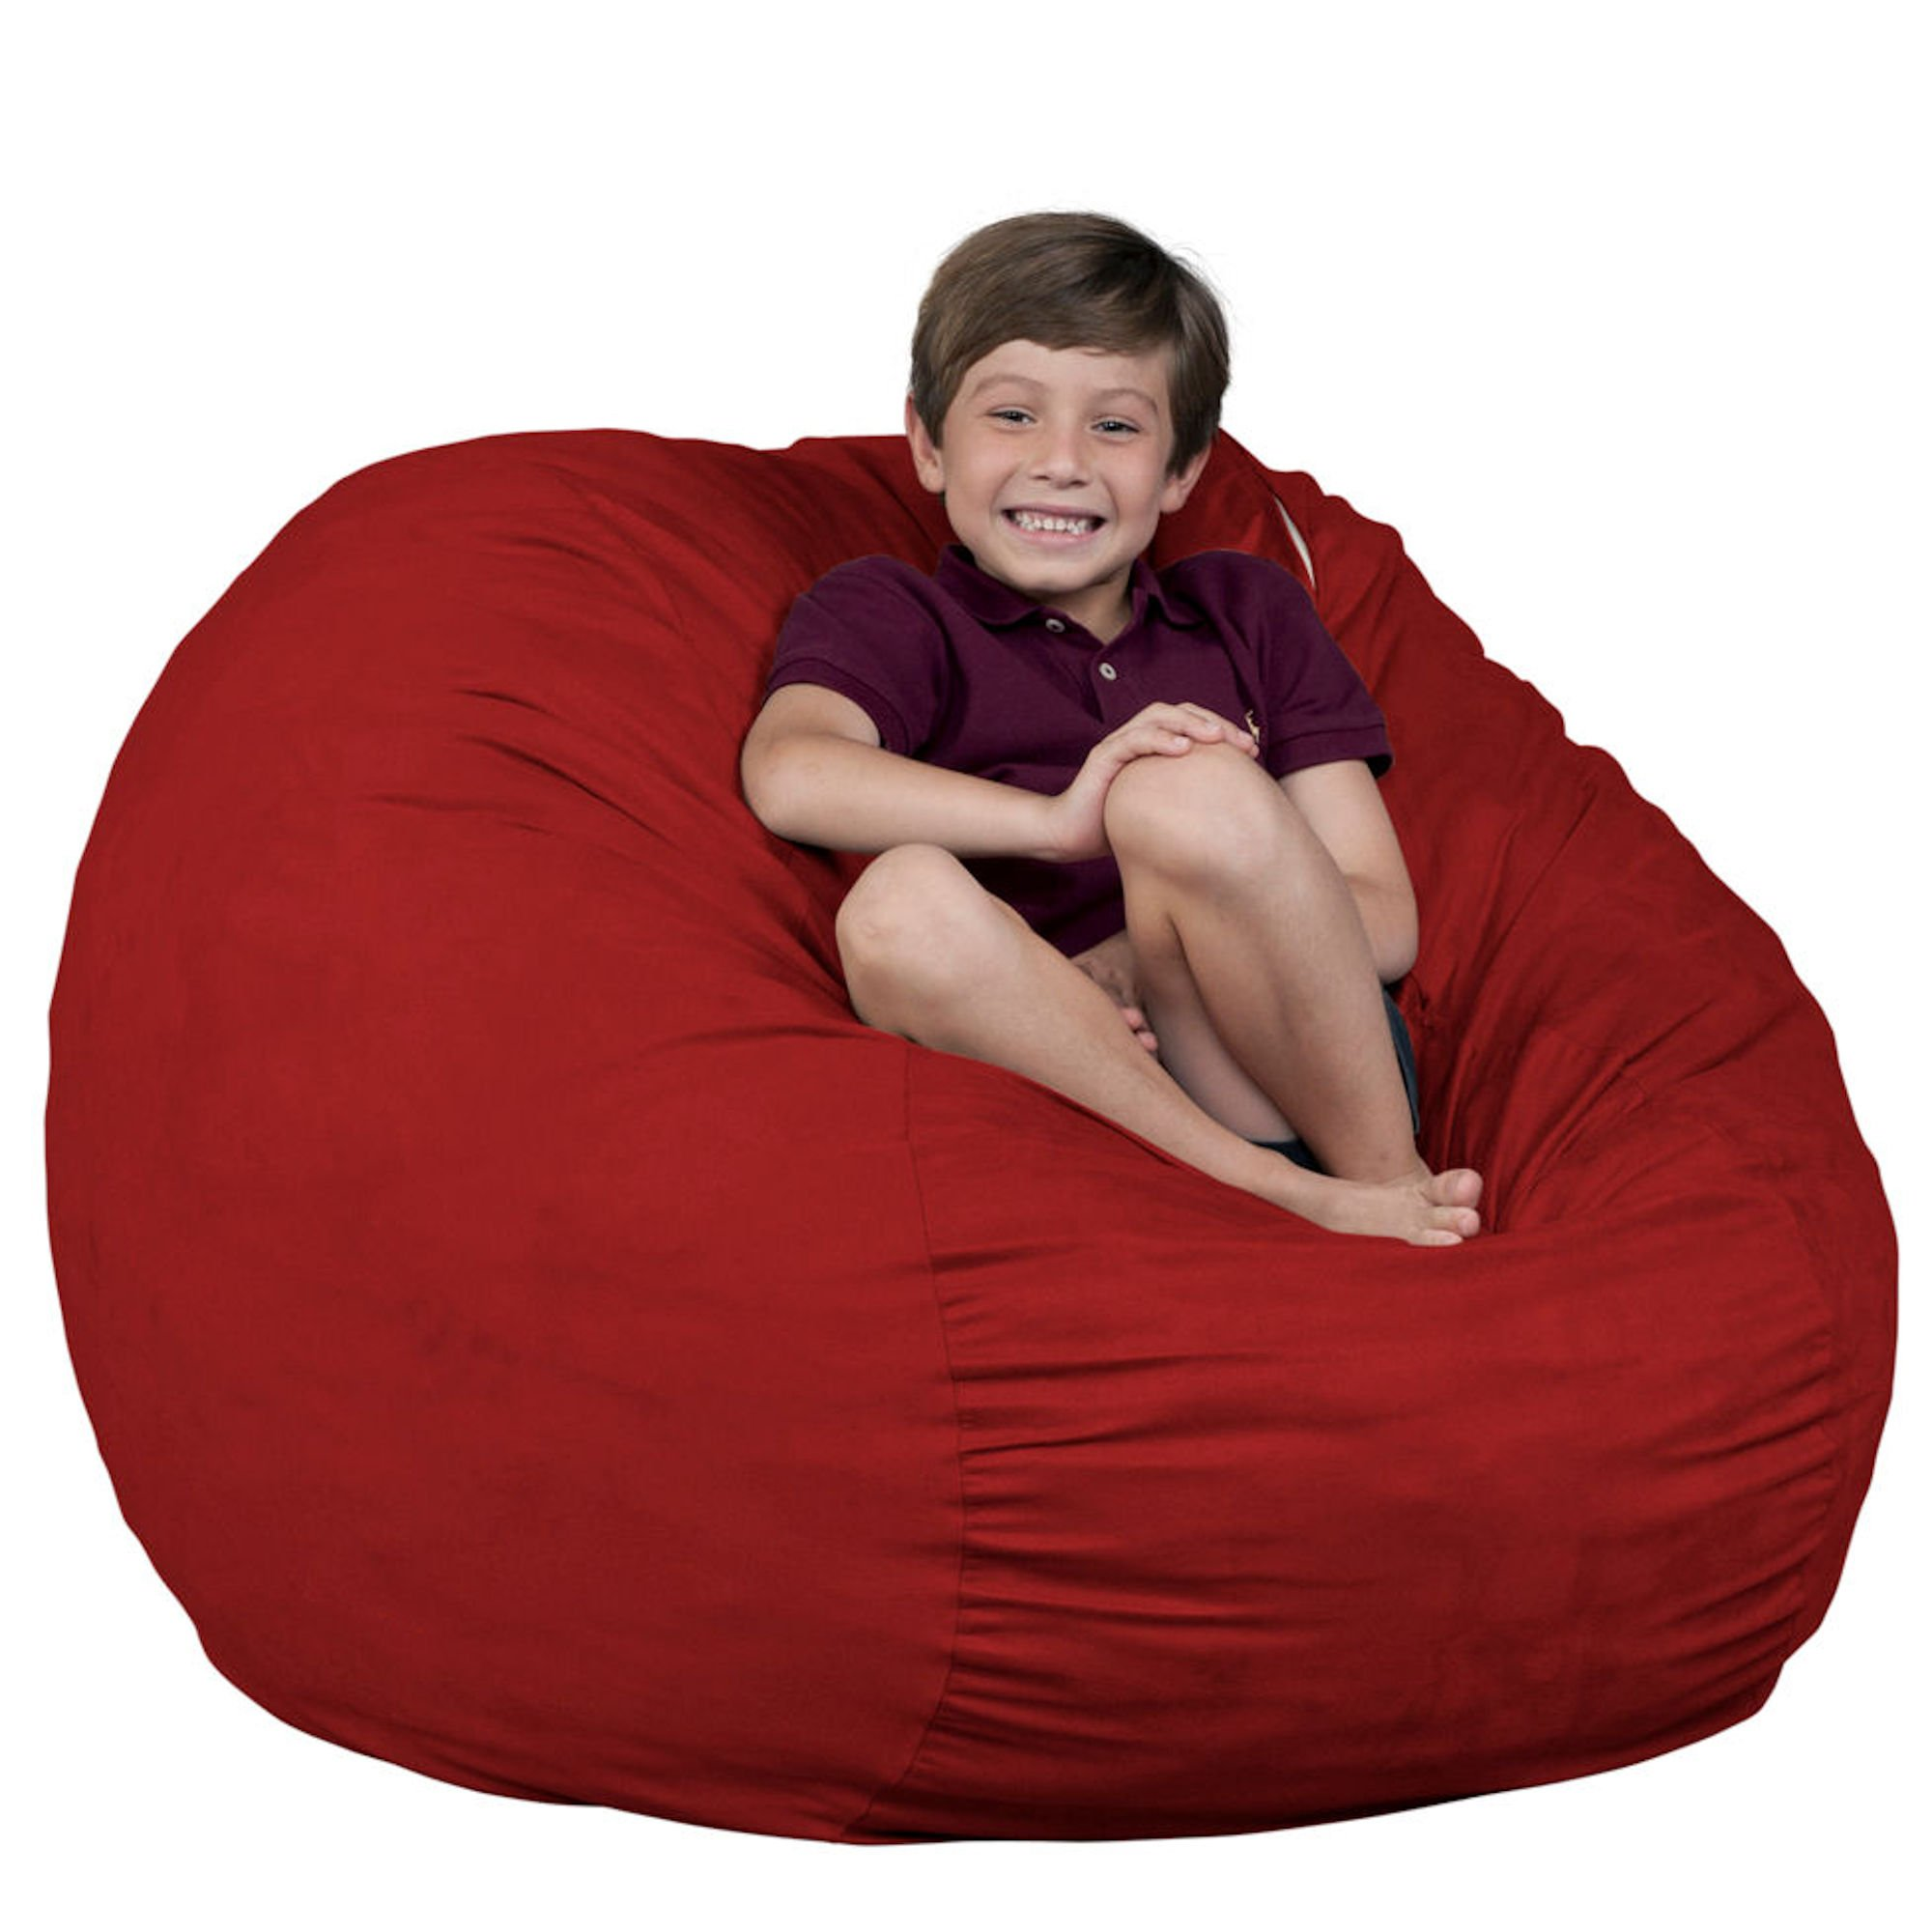 fugu Foam Filled Beanbags in Multiple Sizes and Colors Protective Liner Plus Removable Machine Wash Cover Brand (3 XL, Red)